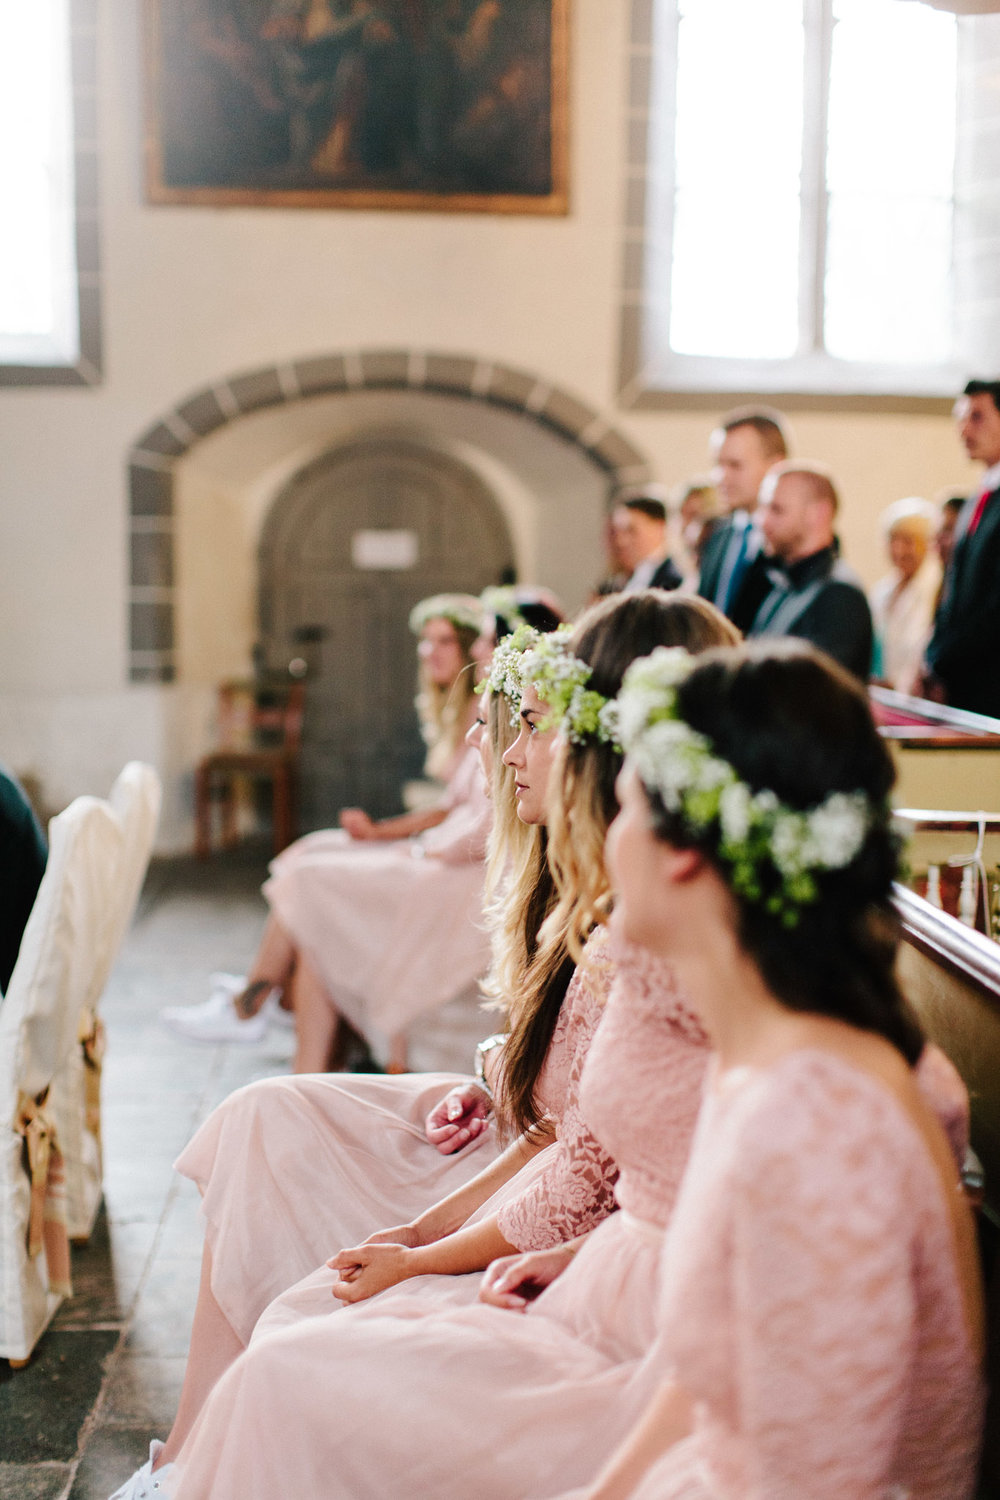 Nordhausen-Harz-Hochzeit-Pia-Anna-Christian-Wedding-Photography-LM-34.jpg